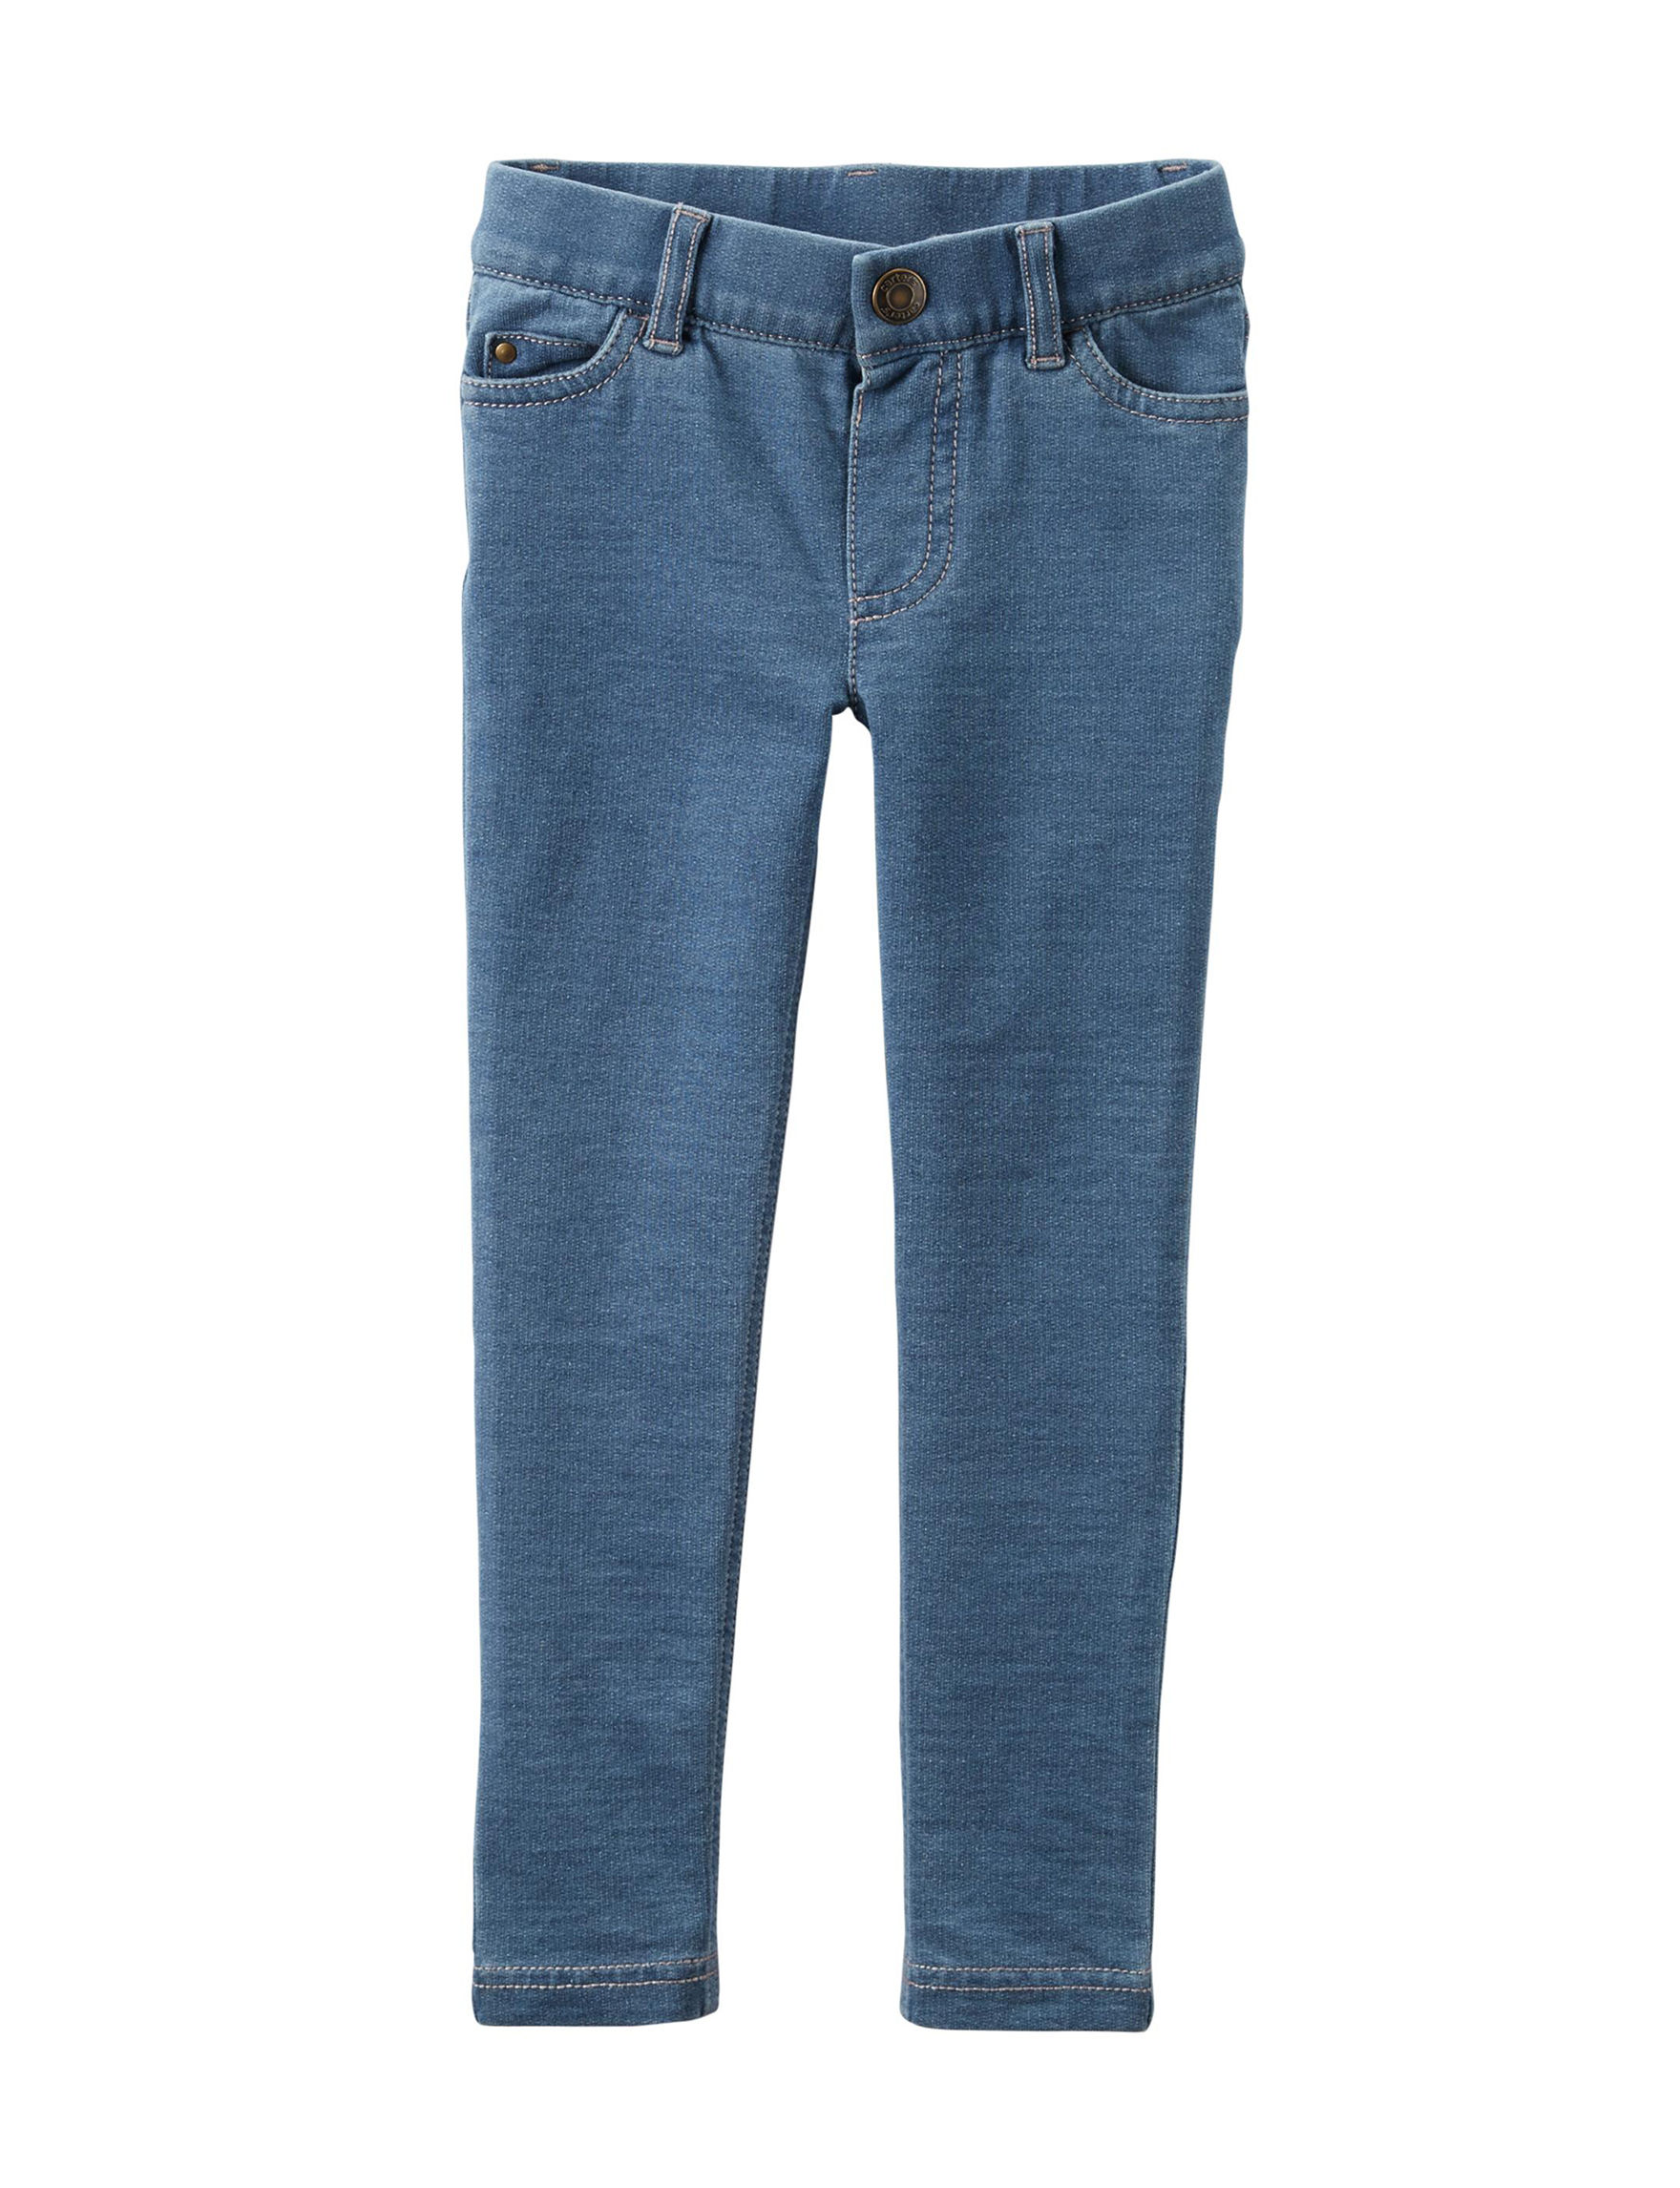 Carter's Denim Skinny